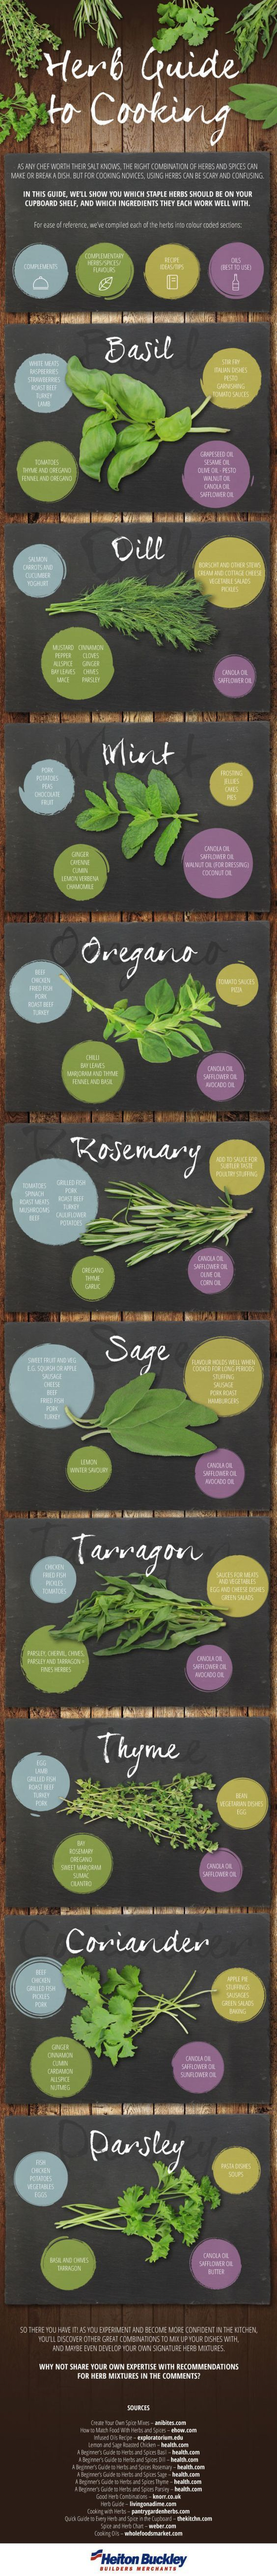 Herb Guide to Cooking | Cooking Guides | Culinary Cooking Skills